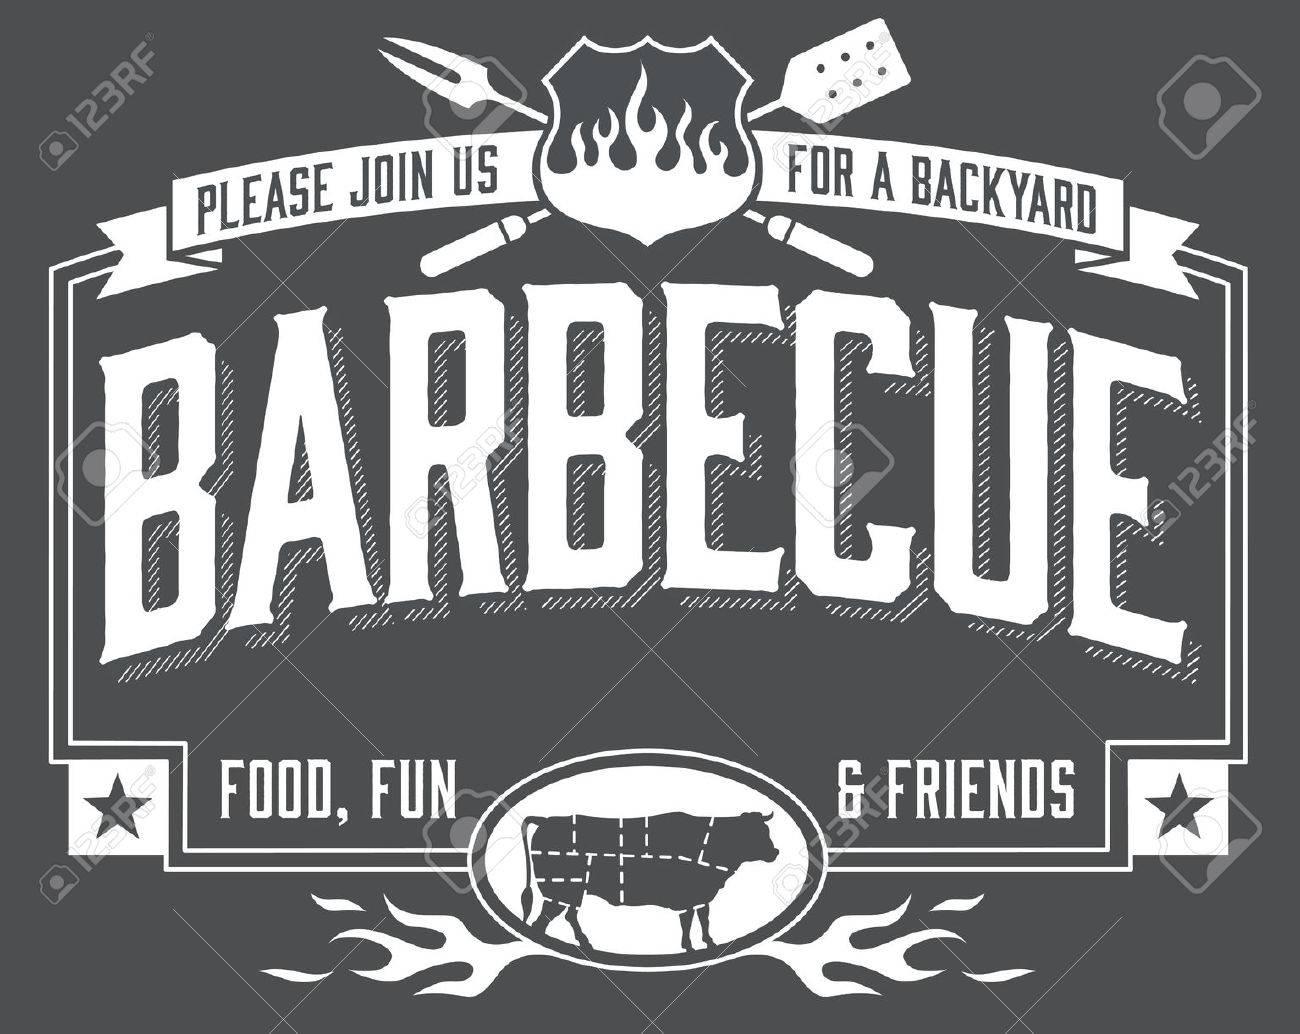 backyard barbecue invitation with chalkboard look easy to edit